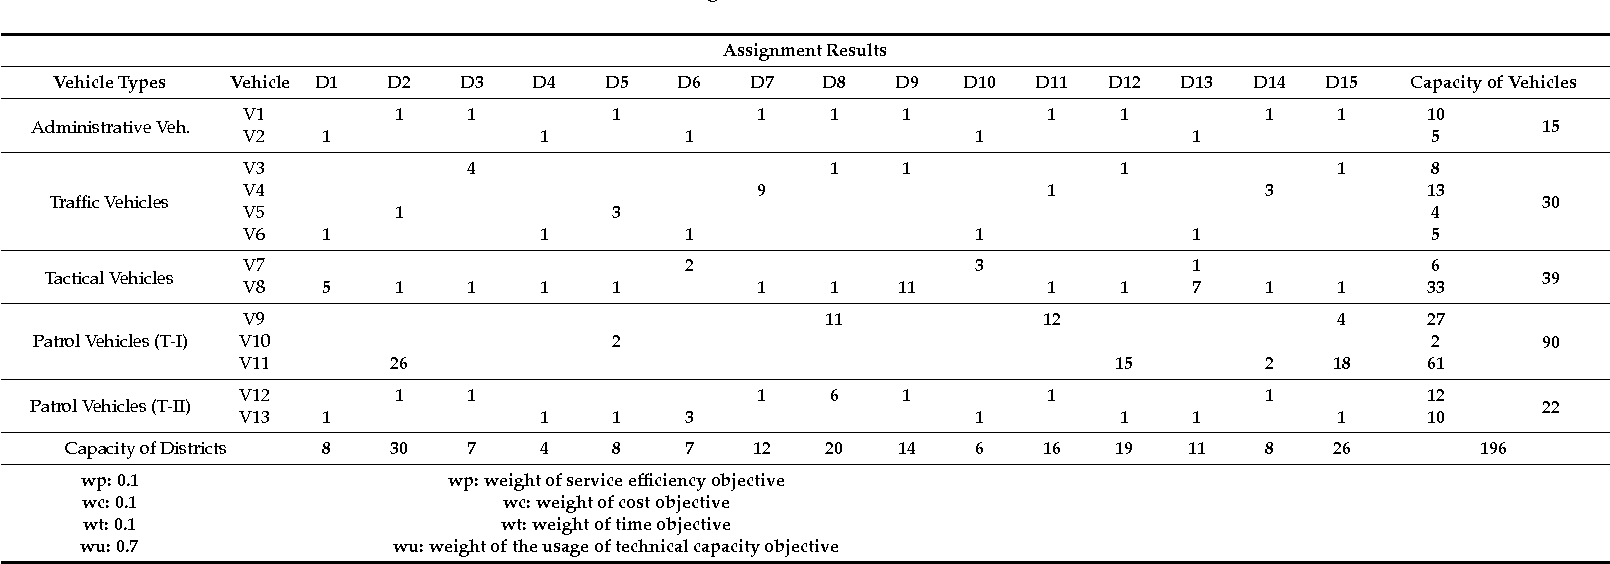 Table 8. Assignment results for Scenario III.